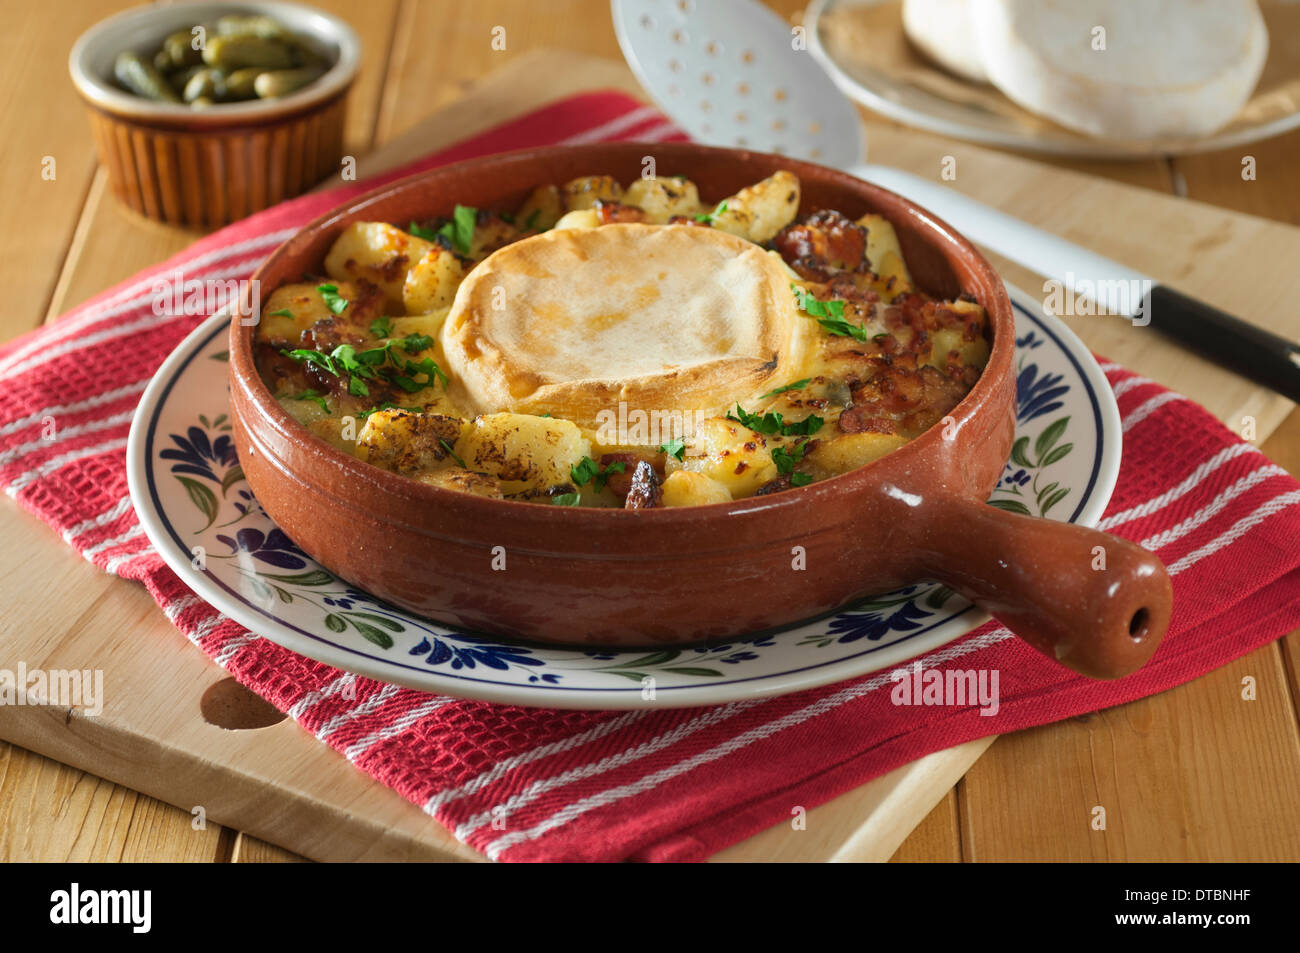 Tartiflette. Potato and bacon dish with Reblochon cheese. France Food - Stock Image